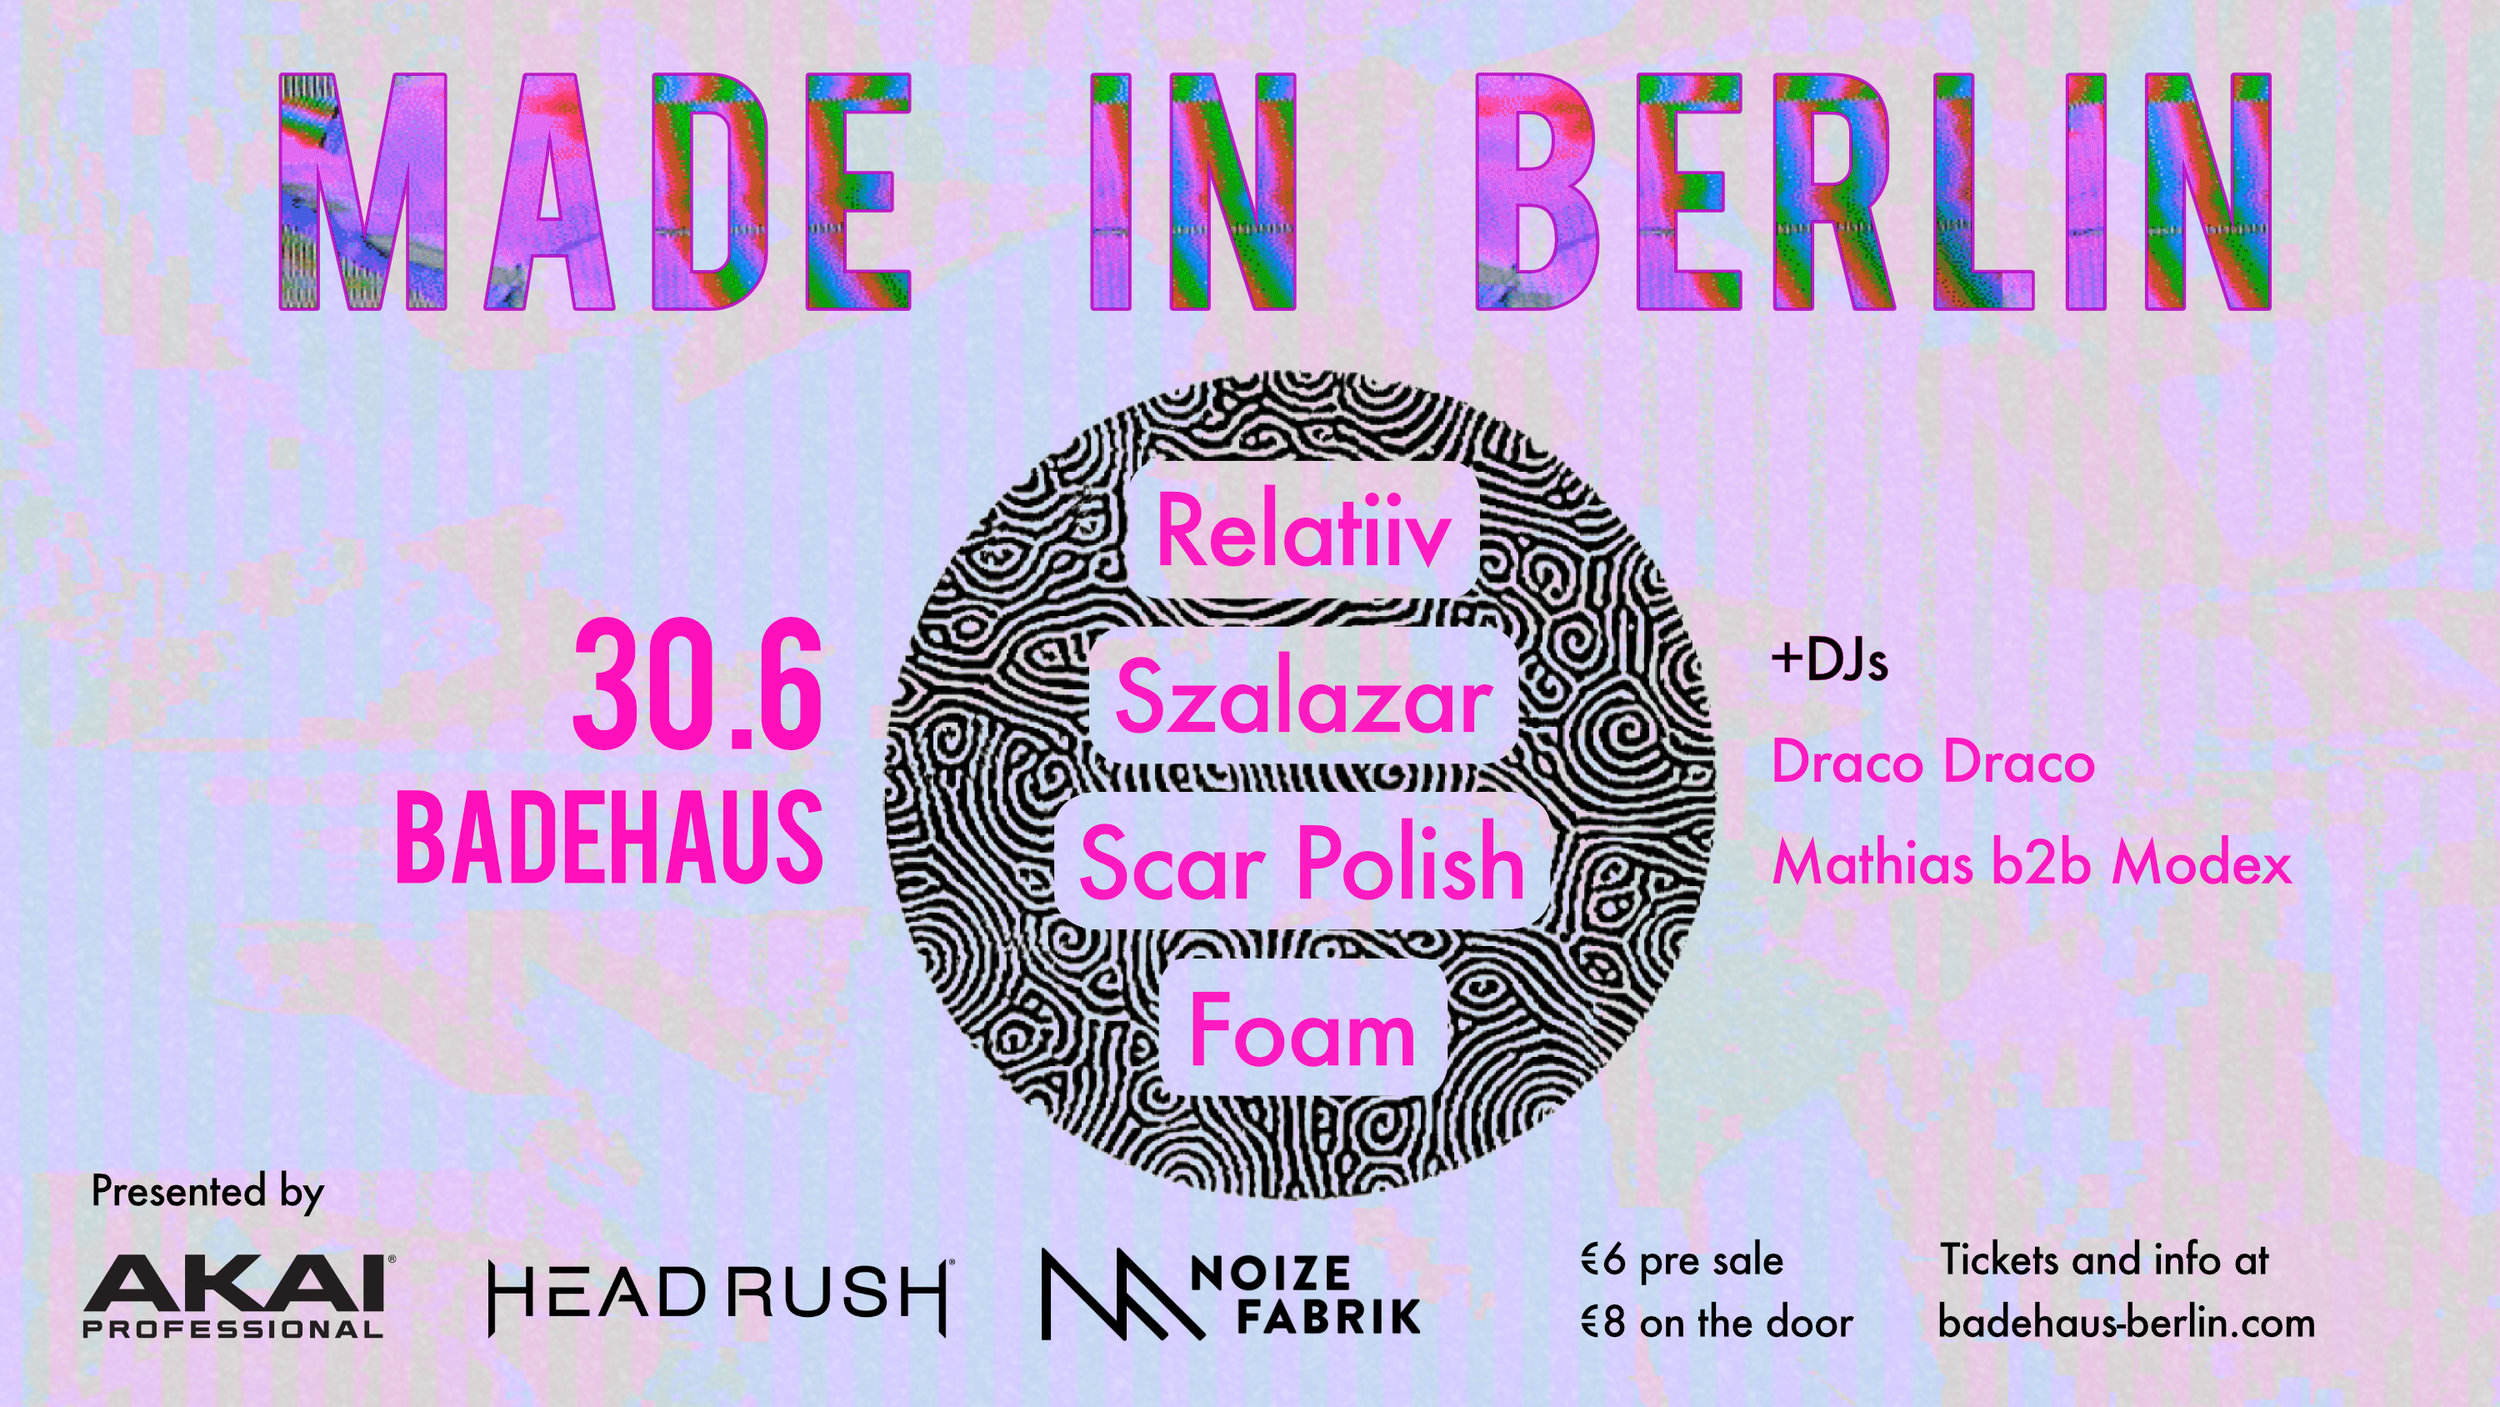 "Akai Professional  x  HeadRush , in collaboration with  Badehaus Berlin and  Noize Fabrik , present 'Made in Berlin', an evening of musical exploration and talent showcase, featuring multi-genre live acts and DJs - with truly established roots to Berlin's thriving musical culture.  Saturday - 30th of June, 8PM - 6AM Badehaus Berlin, (auf dem RAW-Gelände, Zugang Höhe Simon-Dach-Str.), 10245 Berlin  LIVE:  Scar Polish  (UK)  Foam  (EC/CAN)  RELATIIV  (CAT/DE)  Szalazar  (PT/UK)  DJ sets:  Sunday Club  Matthias & Modex (IT/DE)  ///////  SCAR POLISH Berlin-based Scar Polish, moniker to British-born Robin Fisher, is the final product of a transition phase. Combining an indie rock upbringing with the inclusion of deranged electronics, Scar Polish takes a new musical leap into dream psychedelia, gritty sampling and ethereal soundscapes, yet keeping it playful, personal, lo-fi to its fullest and, most importantly, doing DIY justice.  https://soundcloud.com/scarpolish/   https://www.facebook.com/scarpolish/   FOAM Inspired by Hans Christian Andersen's dark tale of the little Mermaid, Ecuadorian-born musician Miche Moreno left her life in Canada for Berlin in order to create little melodies of the heart and recount stories of heartache and the human condition. As Foam, her project and music becomes a manifesto of the human ability to change and adapt as a mean to survival, dissolving into sea foam as the waves are perpetually created into destruction.  http://foamsound.com/   https://www.facebook.com/foamsound   SZALAZAR Bonded by a mutual love of bombasticity, Berlin synthpop duo Szalazar blends upbeat electronic optimism and dreamlike atmospheres with a darker, brooding undertone. Szalazar is a tapestry of anxiety, euphoria and delirium; as beautiful as it is brutal.  https://soundcloud.com/szalazar   https://www.facebook.com/sszalazar/   RELATIIV  Born out of improvisational sessions with honesty at its core, Catalan-German band Relatiiv found in Berlin a common ground and a passion for nu-soul and downtempo hip hop beats. As the creative process is repurposed into a collective therapy, their music dives into an intersection of electronics, soul and whispered emotion, represented as their true creative and mindful expression.  https://soundcloud.com/relatiiv   https://www.facebook.com/relatiiv/   SUNDAY CLUB Sunday Club is group of five friends based in Berlin who want to share a collective Sunday experience with cool people who like cheesy house records, cinnamon rolls and love. Bound together by weirdness and kindness in equal parts, they began a thorough investigation into the best way to spend Sundays. After a long, arduous winter of research, the solution had been found: ""cinnamon rolls and weird music and lots of dancing.""  https://soundcloud.com/sundayclubberlin    https://www.facebook.com/sundayclubberlin/    MATTHIAS & MODEX Matthias & Modex, are the two founders behind the newly established Berlin based collective Foundation. They share a highly eclectic style ranging anywhere from old school breaks with hip hop influences as well as trance and techno with more complex forms of synthesis. The mood in their sets yet still maintains a common essence throughazout the various genres presented, ultimately showing their own imprint.  https://www.facebook.com/foundation.nasty/    https://www.facebook.com/xemod/"